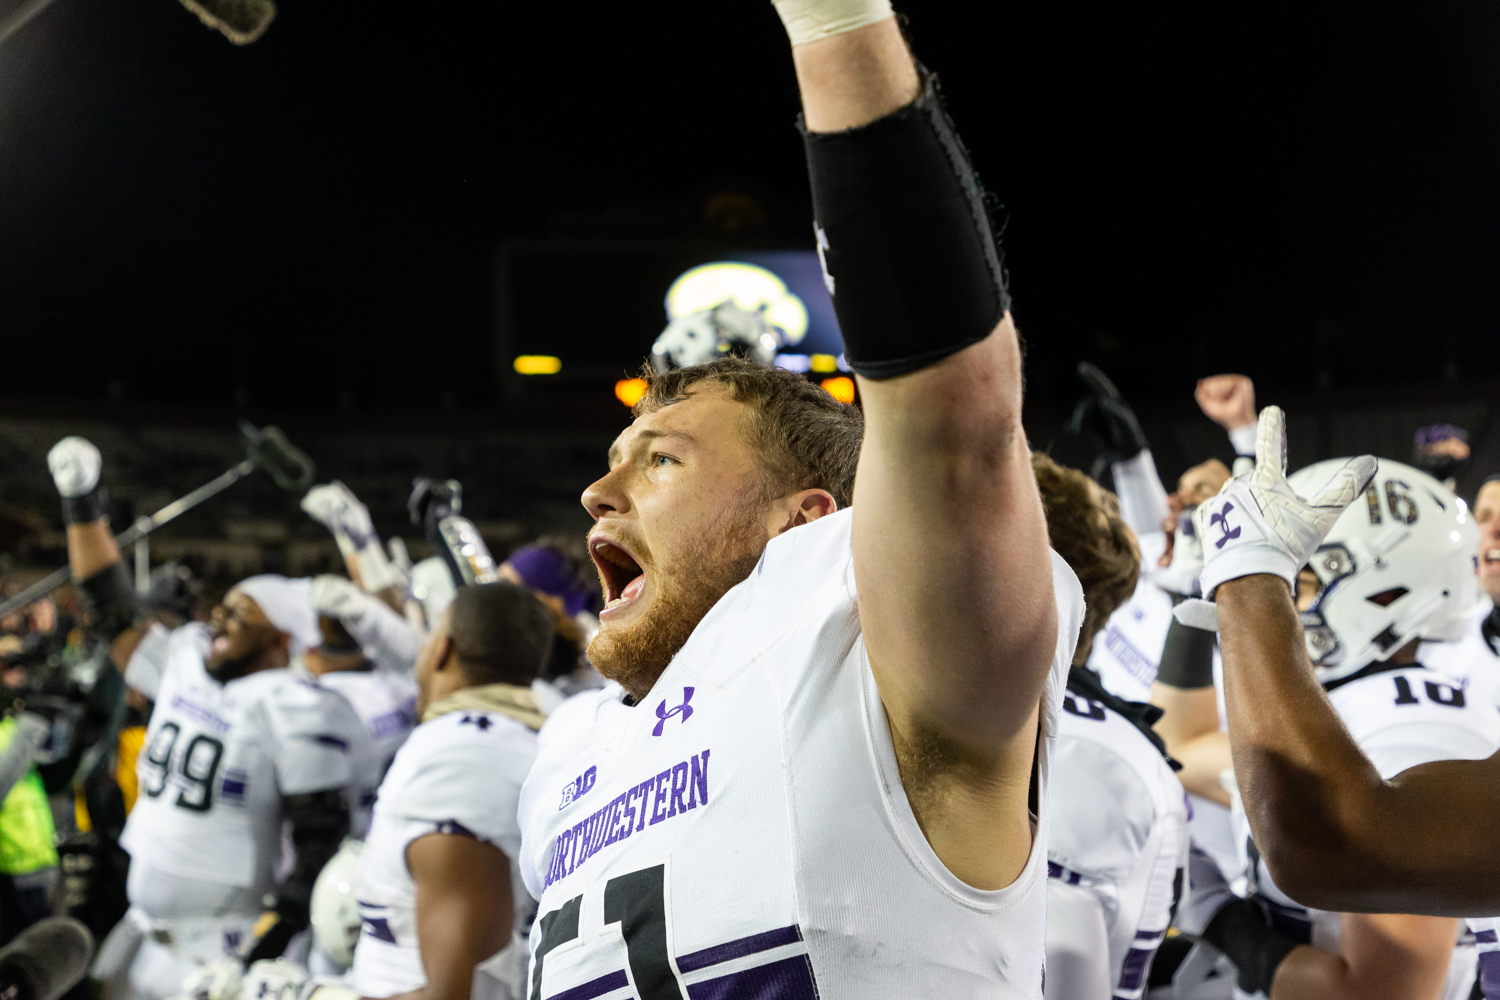 Northwestern+linebacker+Blake+Gallagher+%2351+celebrates+after+a+game+against+Northwestern+University+on+Saturday%2C+Nov.+10%2C+2018+at+Kinnick+Stadium+in+Iowa+City.+The+Wildcats+defeated+the+Hawkeyes+14-10.+%28David+Harmantas%2FThe+Daily+Iowan%29